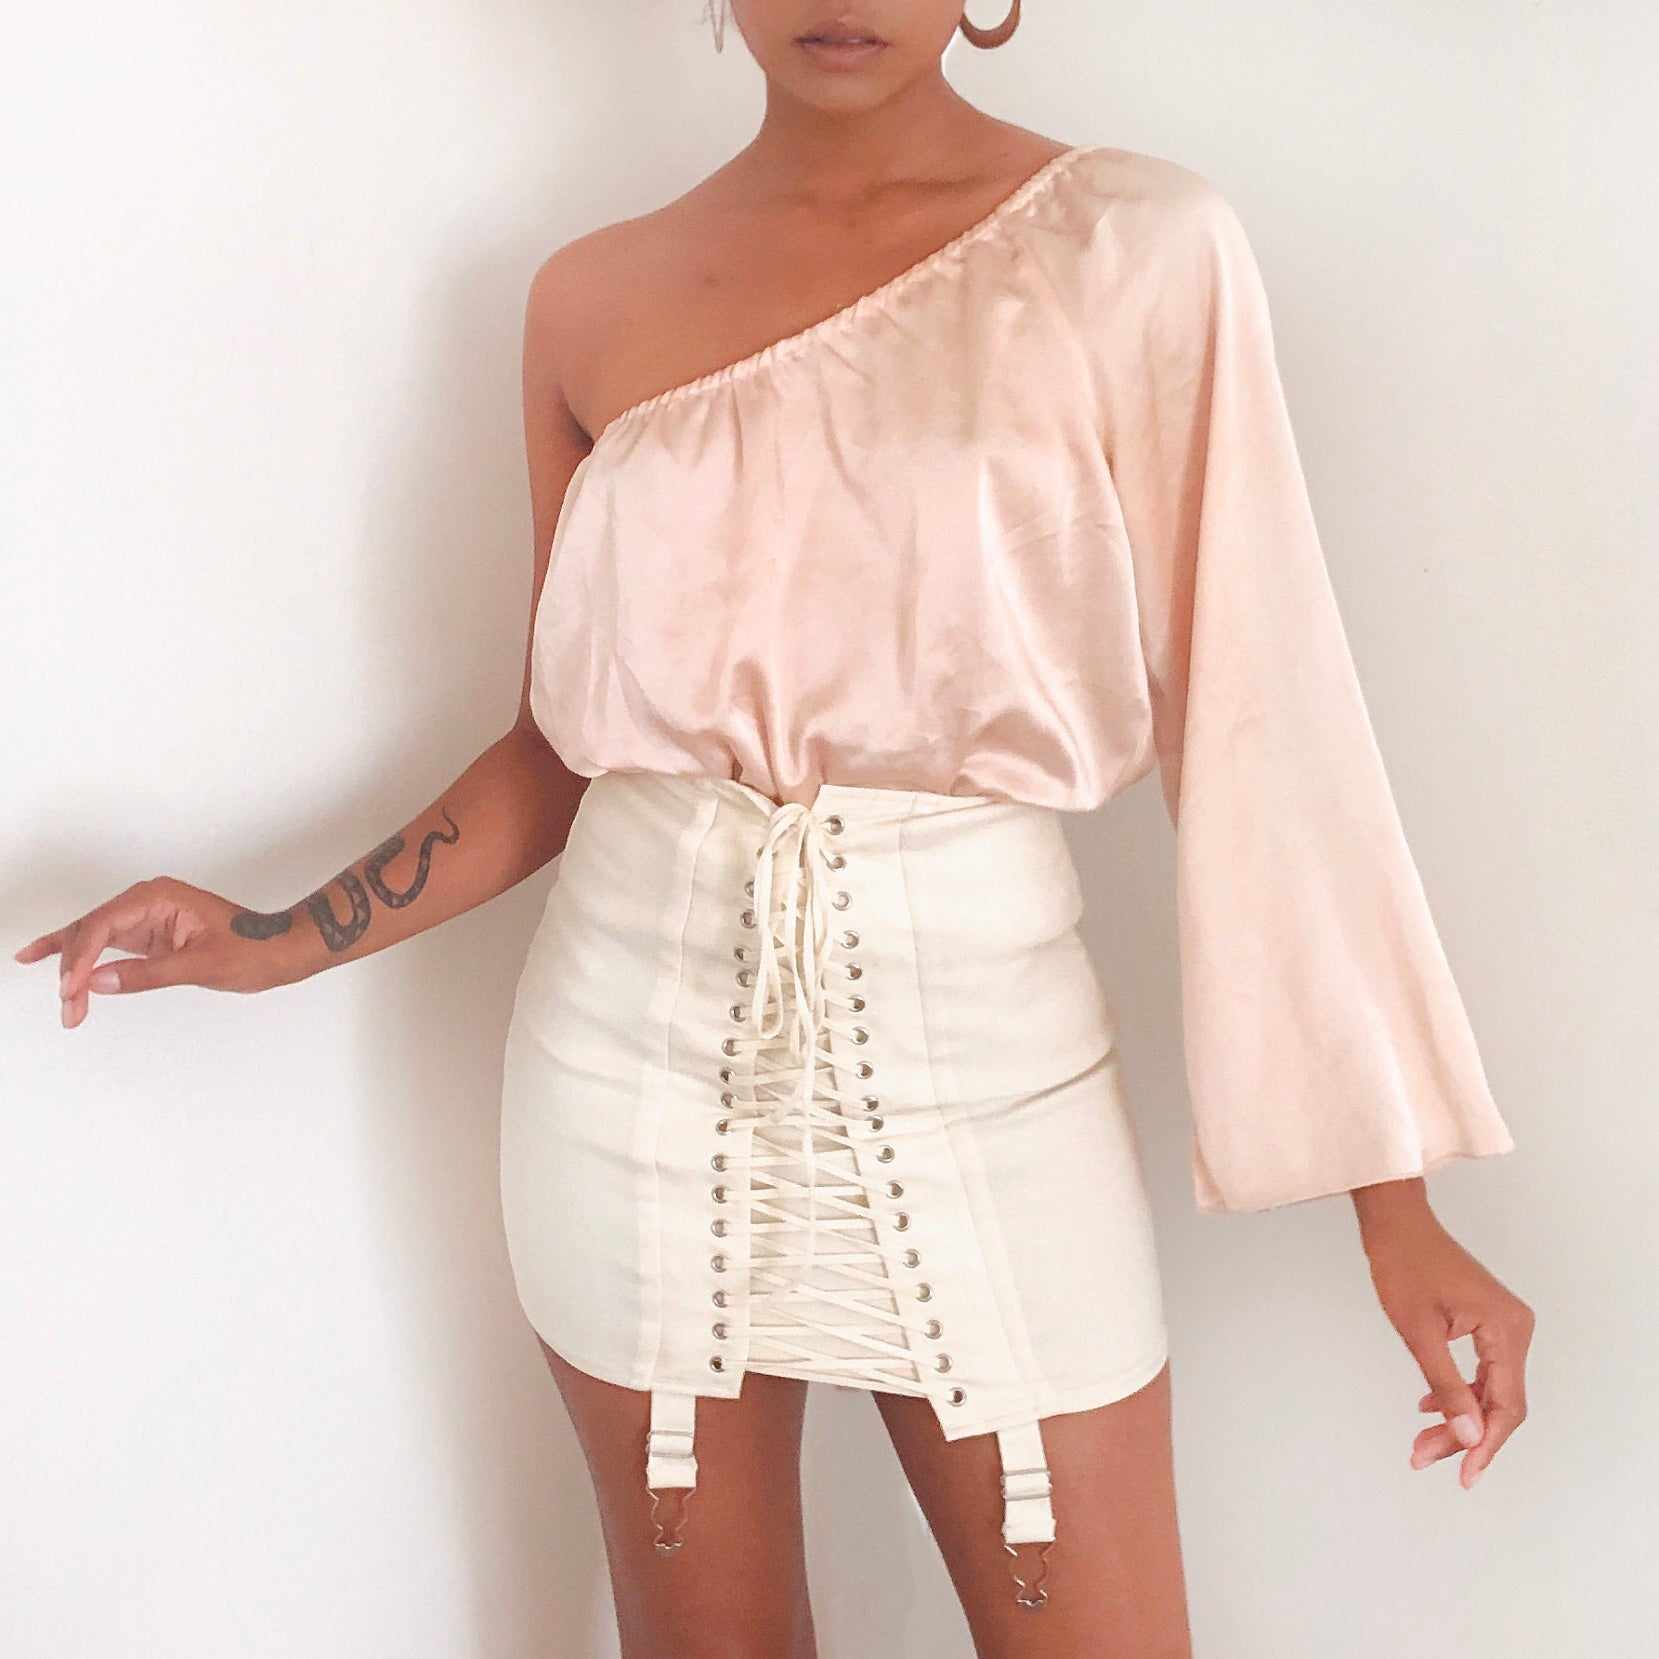 Peachy asymmetrical top